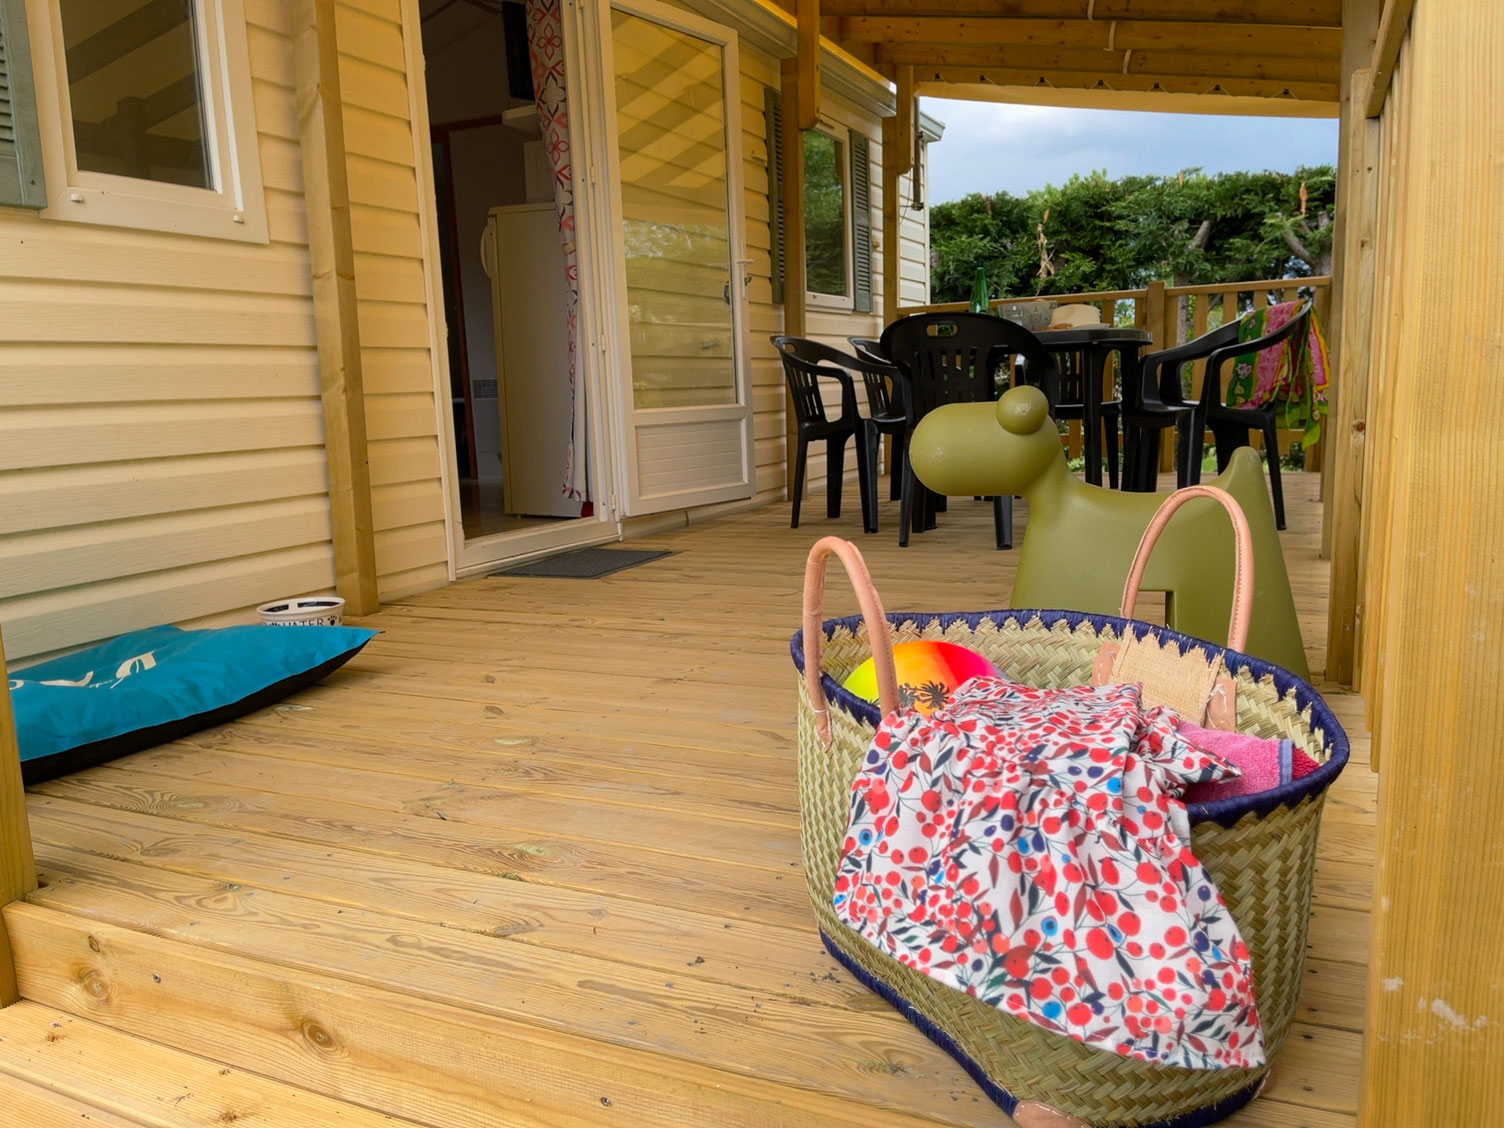 galerie-location-mobil-home-6-8-personnes-evasion-terrasse-camping-moricq